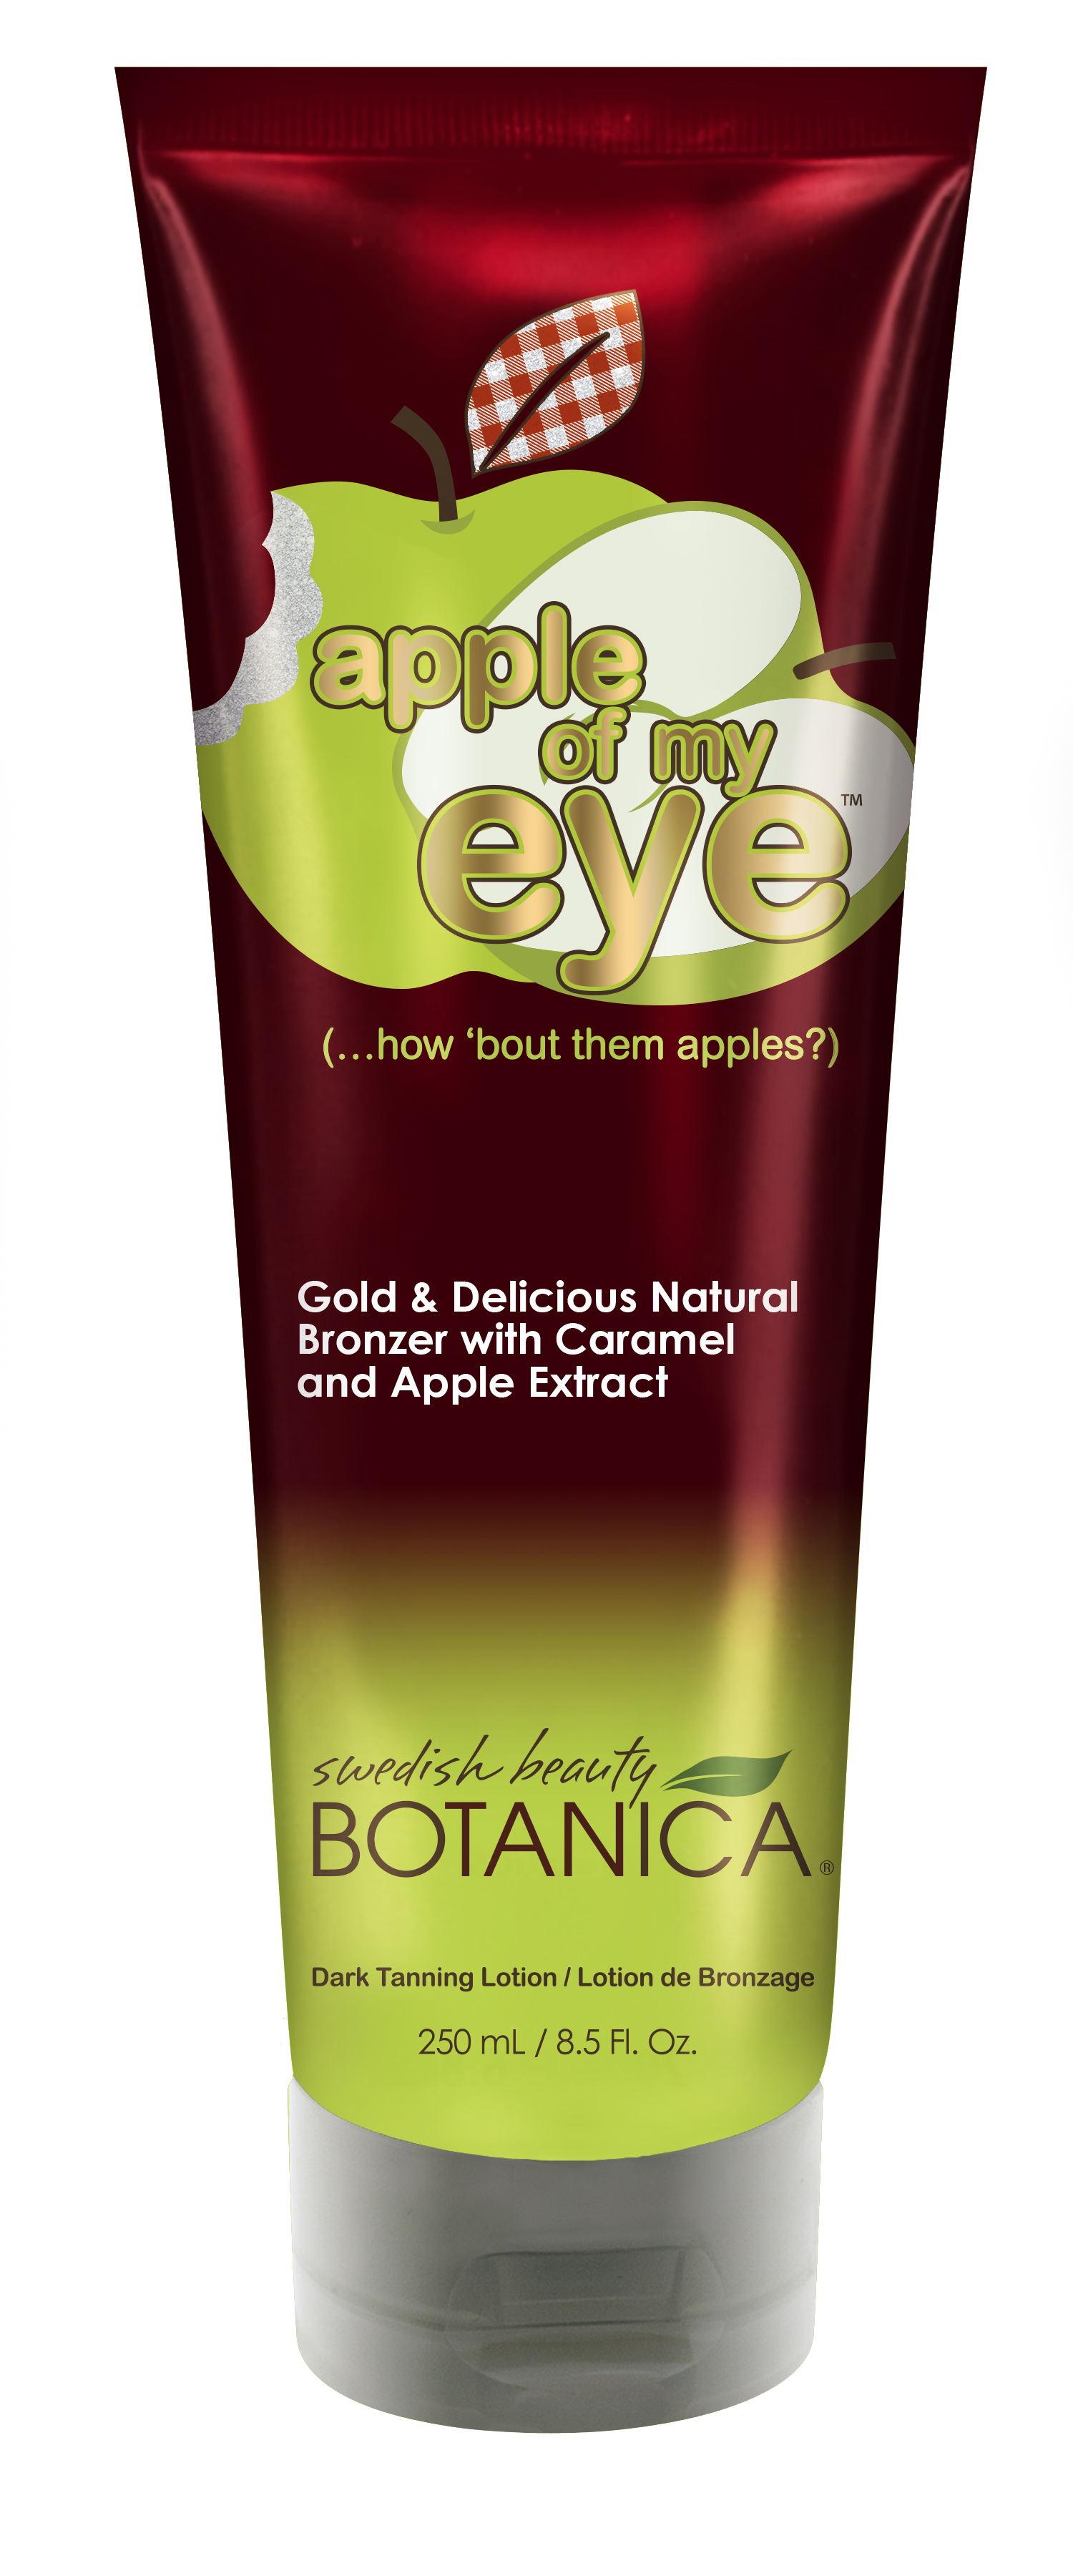 Apple of My Eye™ Gold & Delicious Natural Bronzer